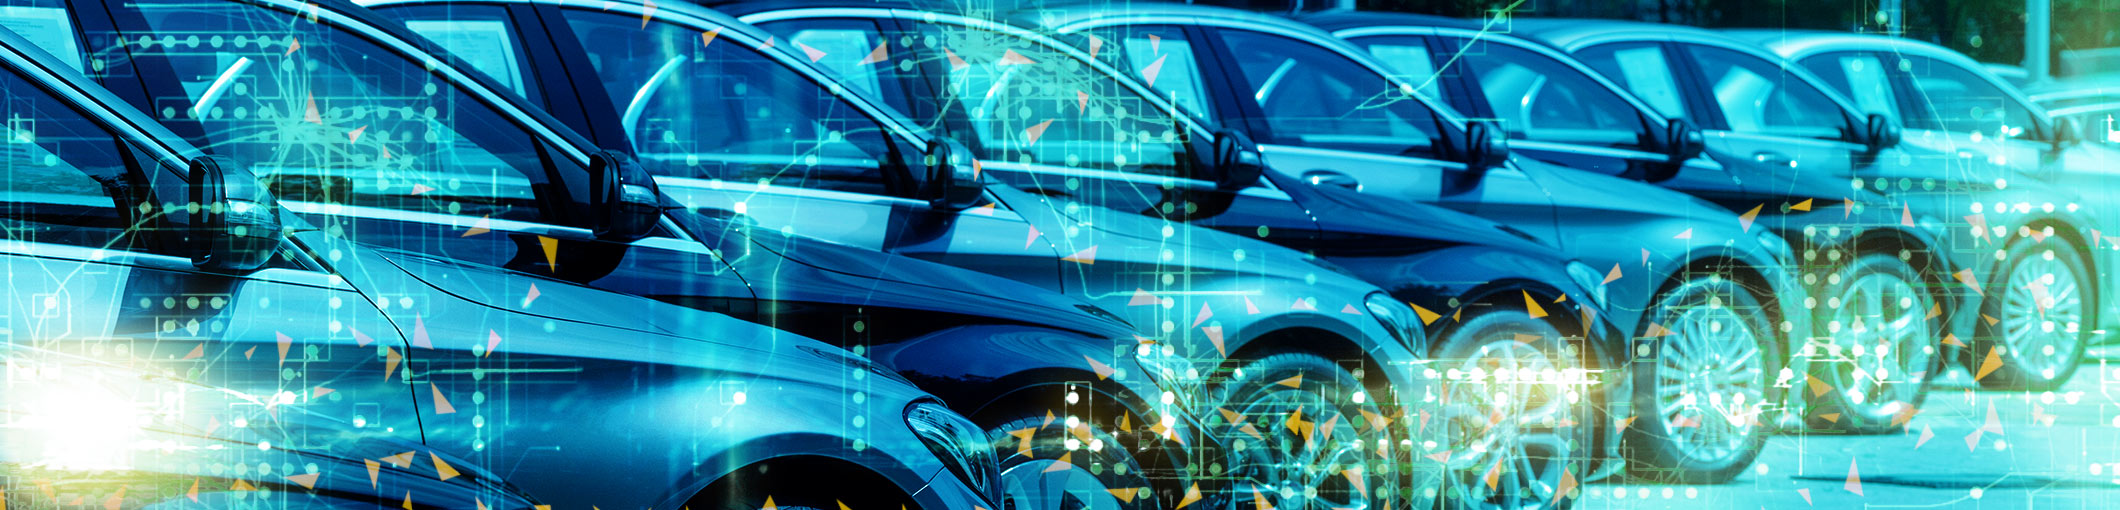 Fleet Dome, Automotive Cybersecurity, Fleet Cybersecurity